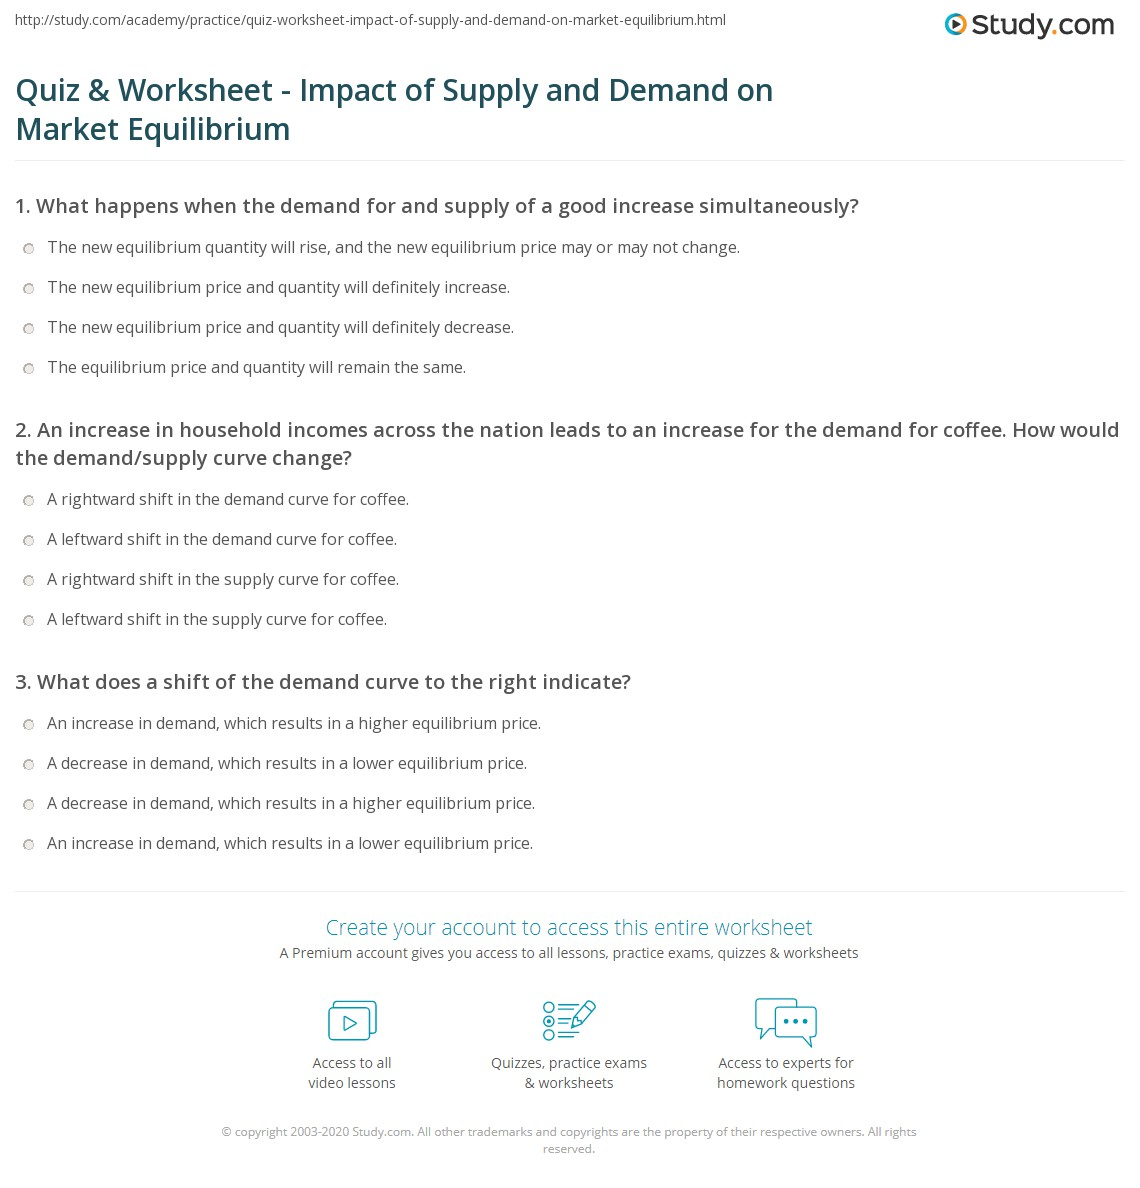 Printables Supply And Demand Worksheet quiz worksheet impact of supply and demand on market print how changes in affect equilibrium worksheet